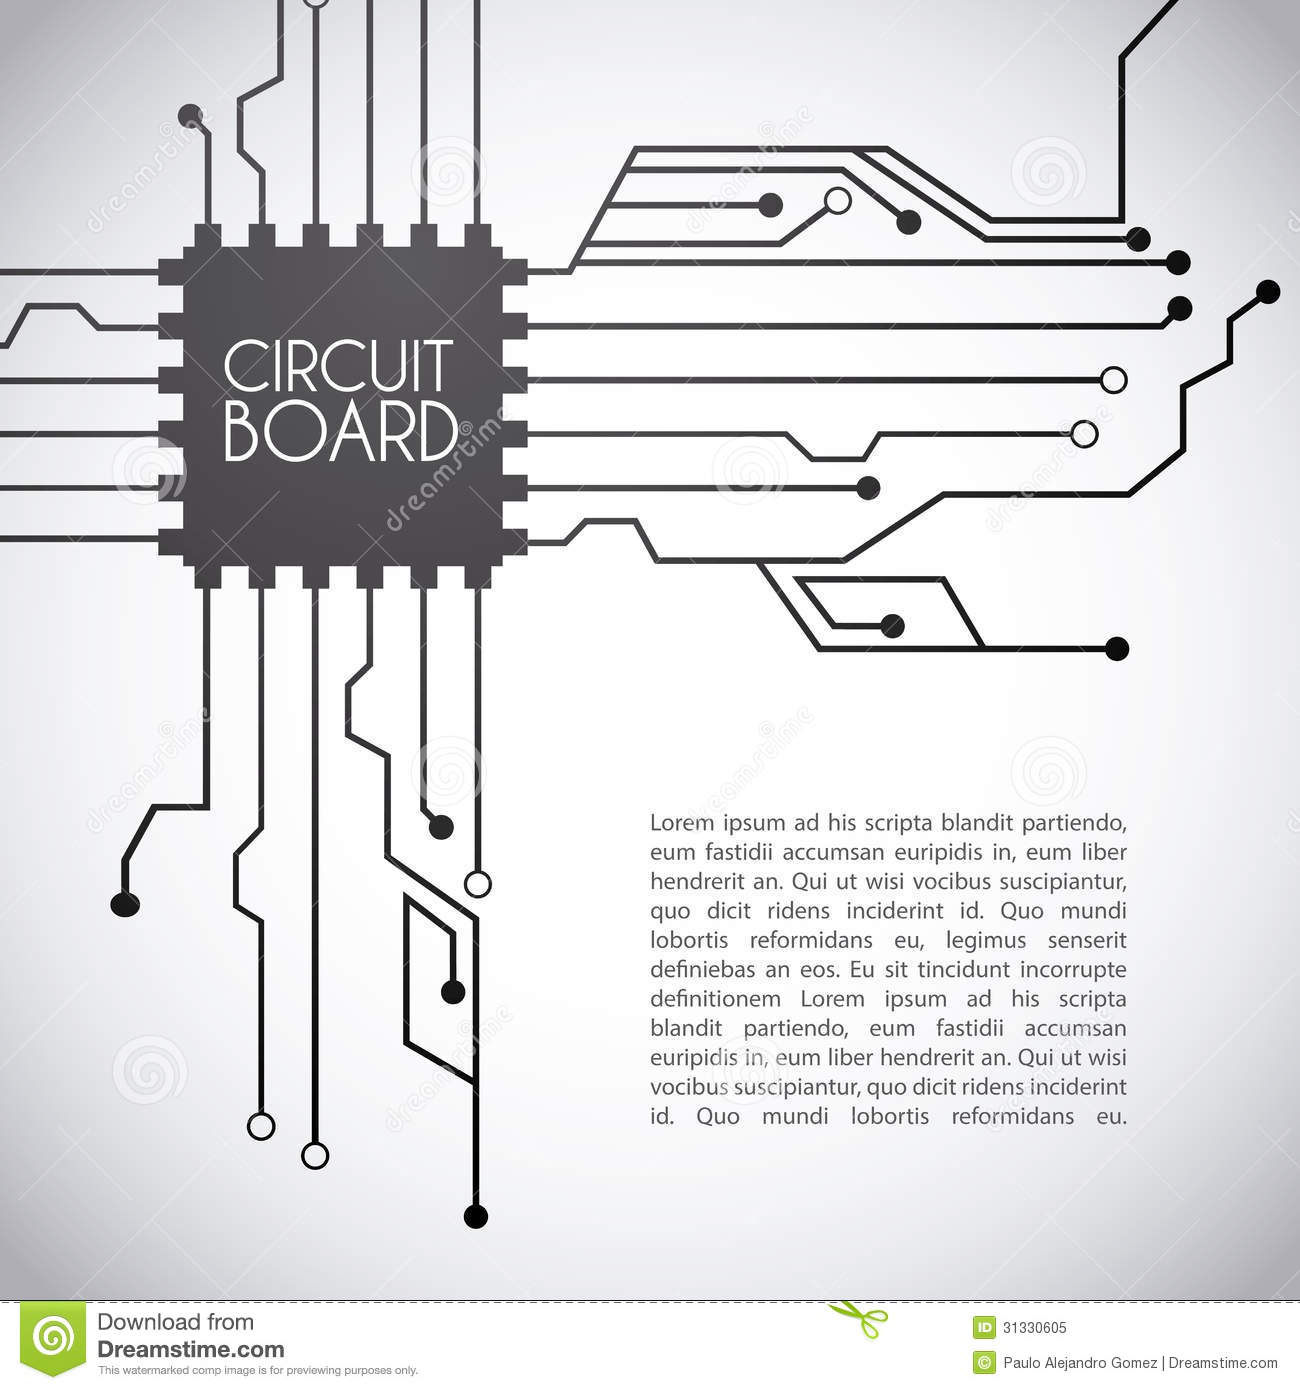 Circuit Board Design Stock Vector Illustration Of Auto Electrical Background Royalty Free Image 24974606 Photo